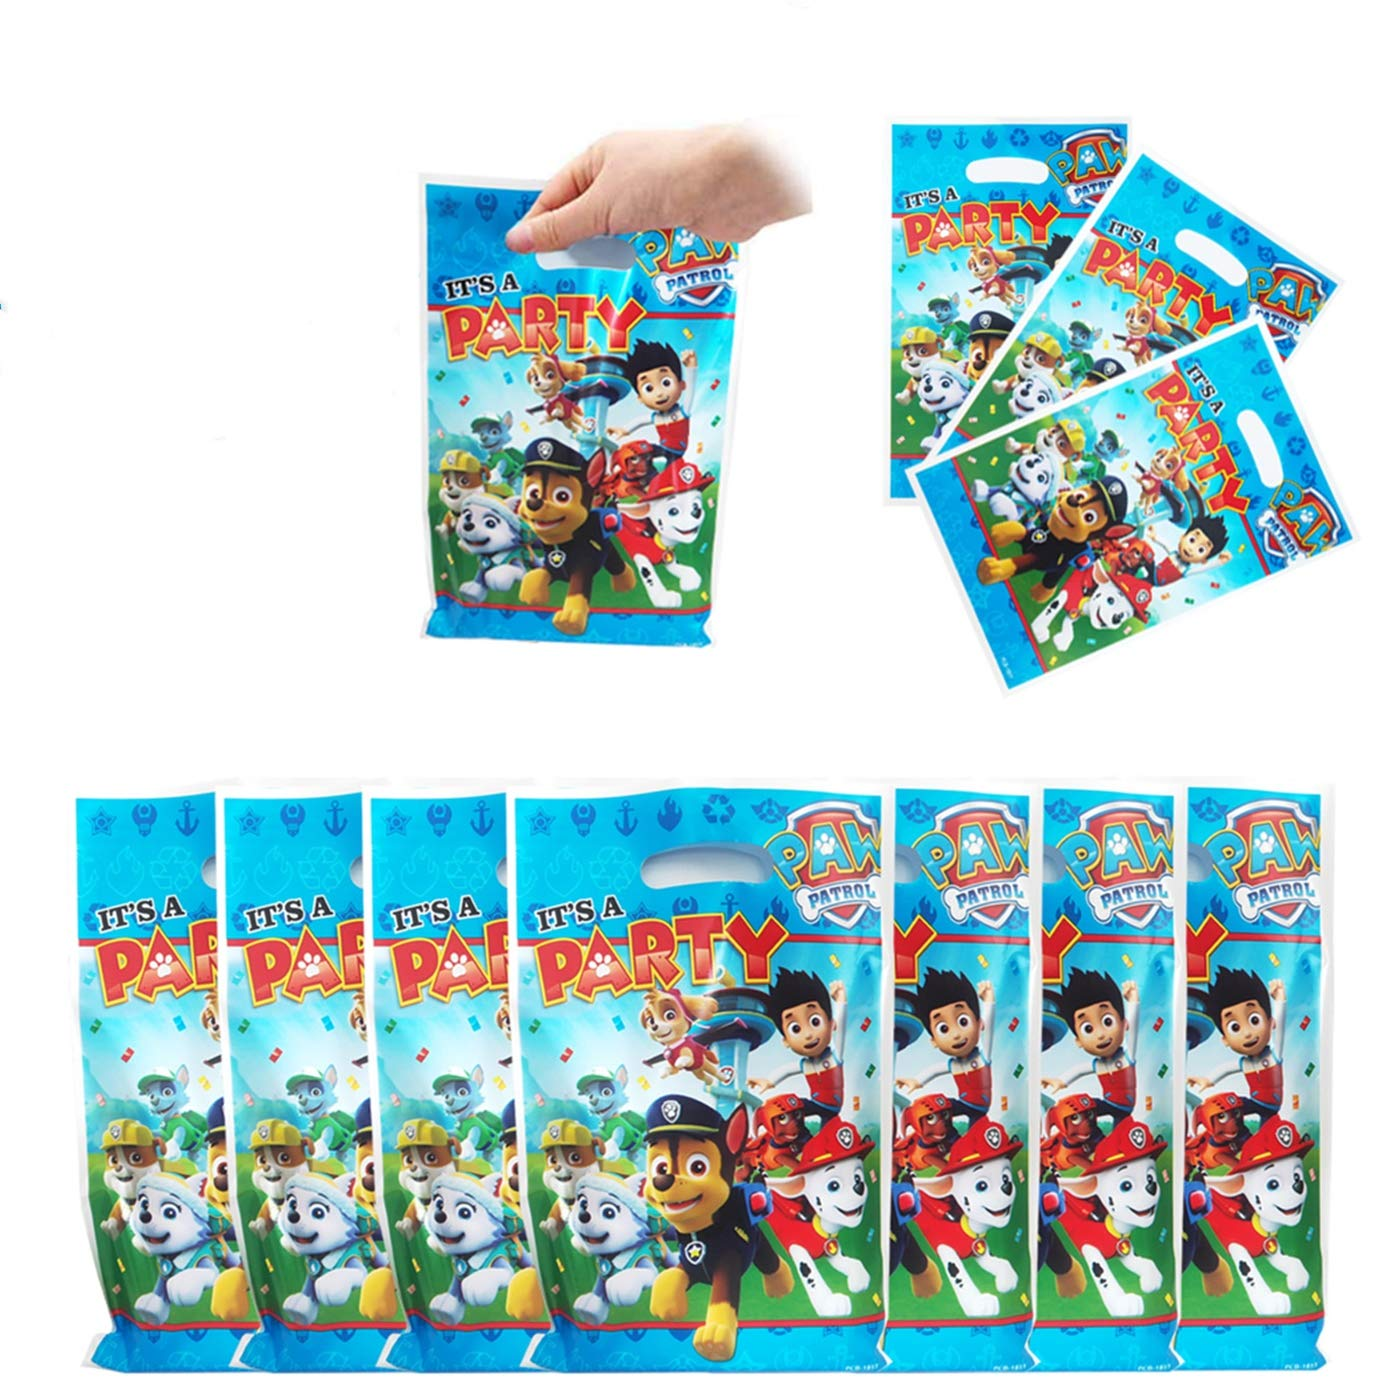 30 Packs PAW dog Patrol Cute Party Gift Bags,PAW dog Patrol Gift Bags Party Supplies PAW dog Patrol Themed Party, Birthday Decoration Gift Bags PAW dog Patrol suppliers